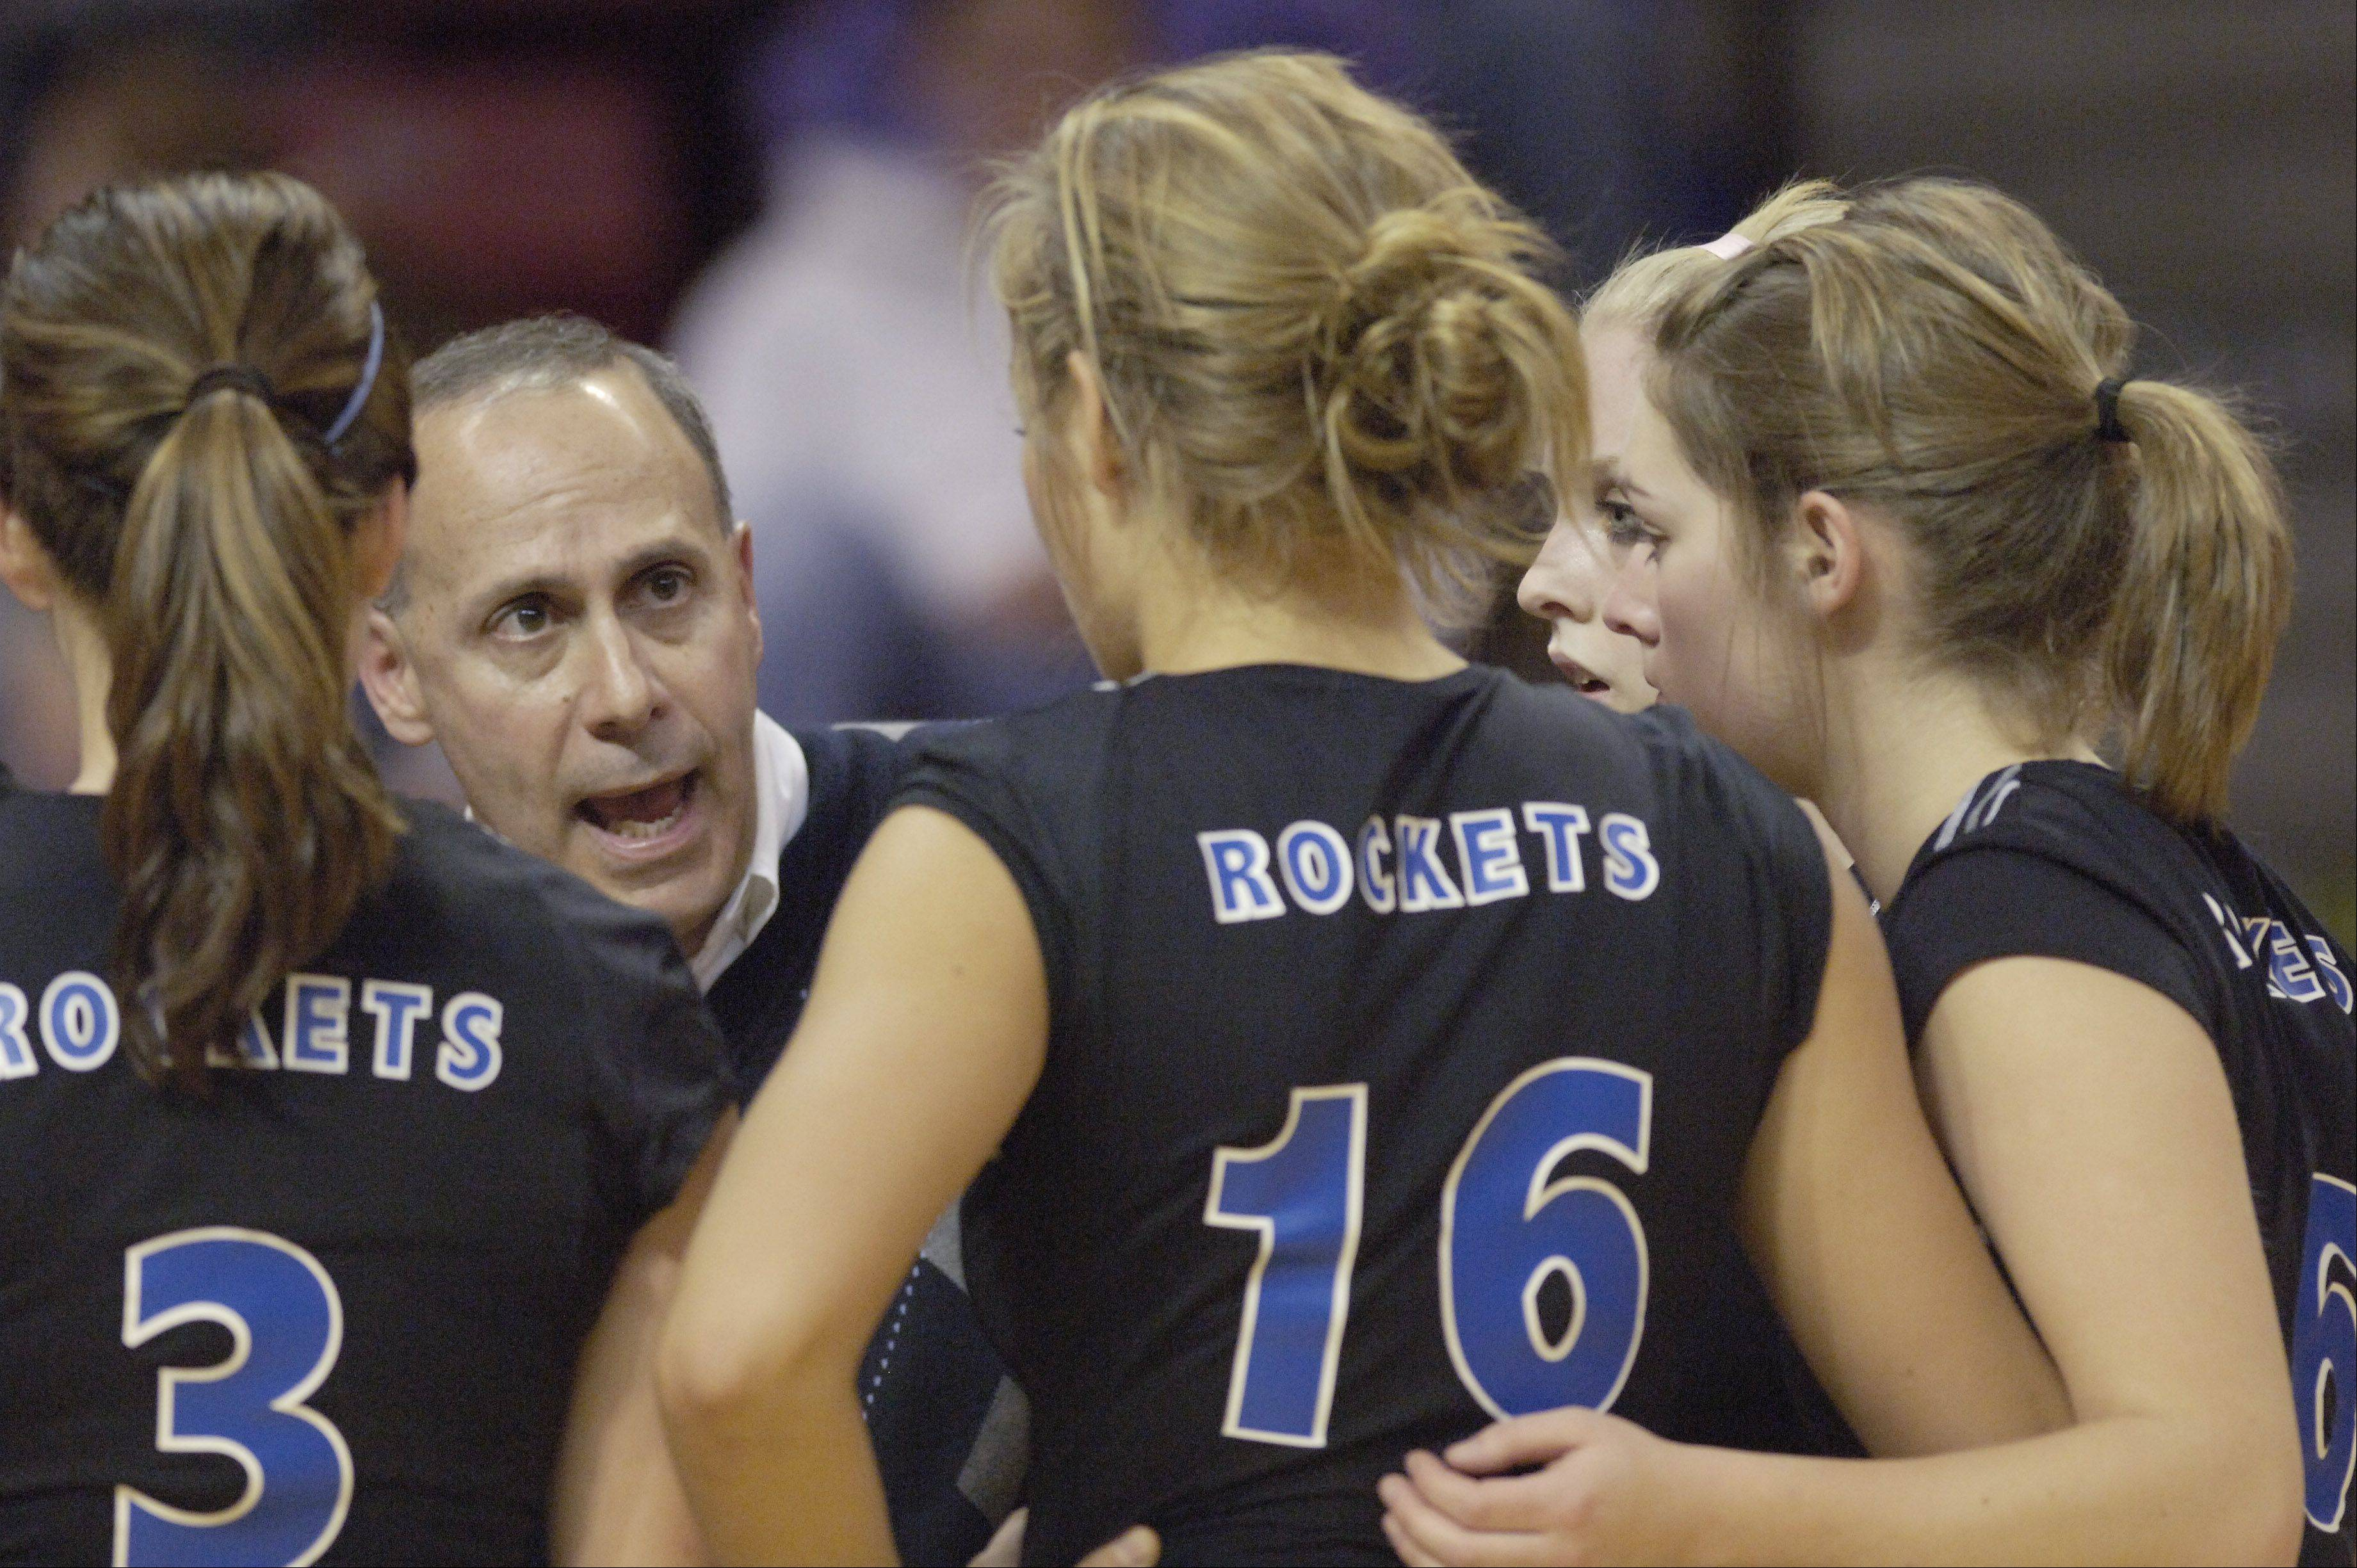 Burlington Central coach Marvin Leavitt talks with his team during a timeout in the 2008 Class 3A state championship match against Joliet Catholic Academy. Leavitt won his 600th career match on Saturday at the DeKalb tournament.